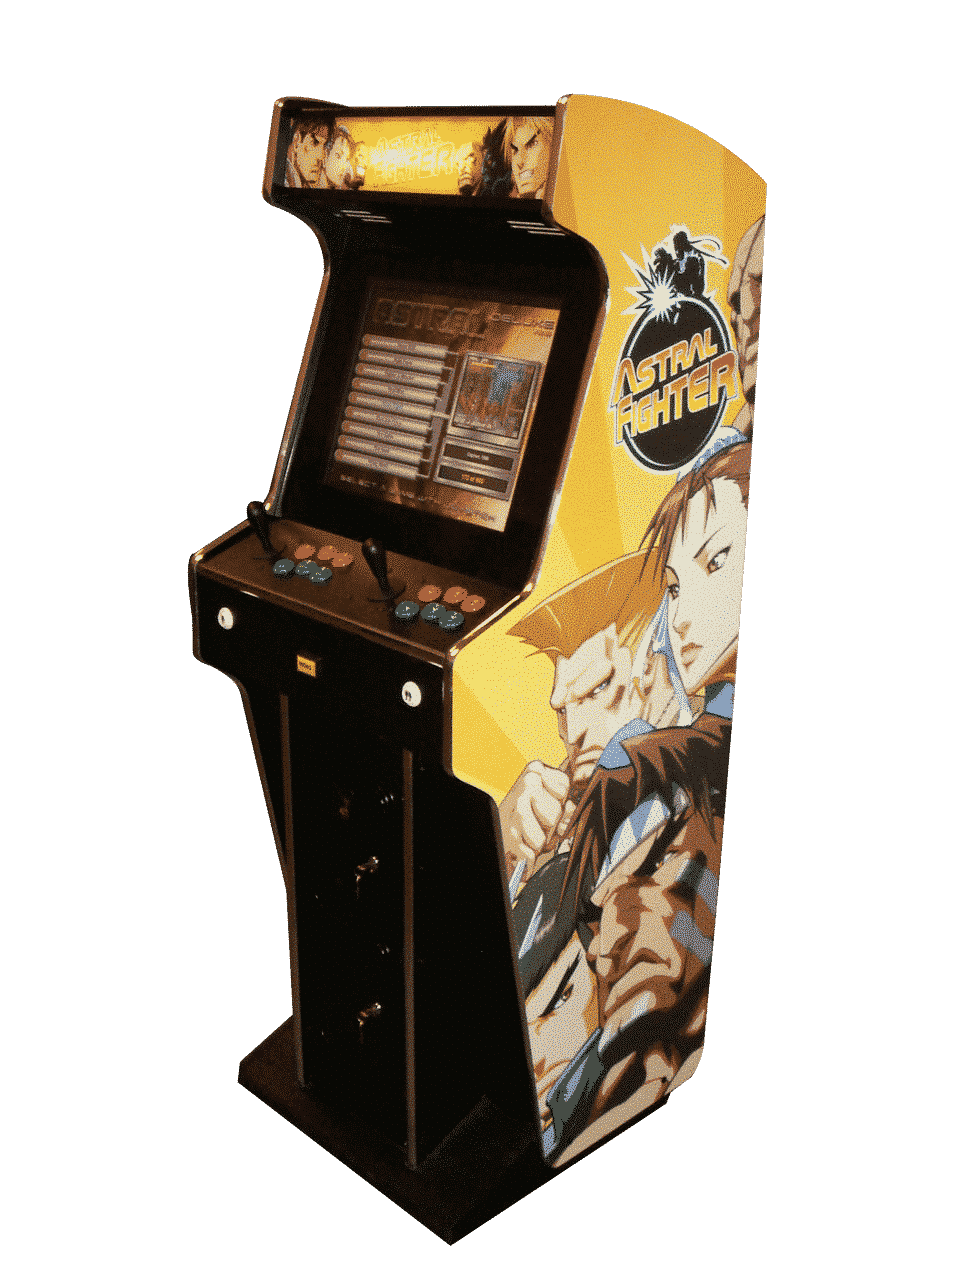 Astral Fighter Arcade Machine